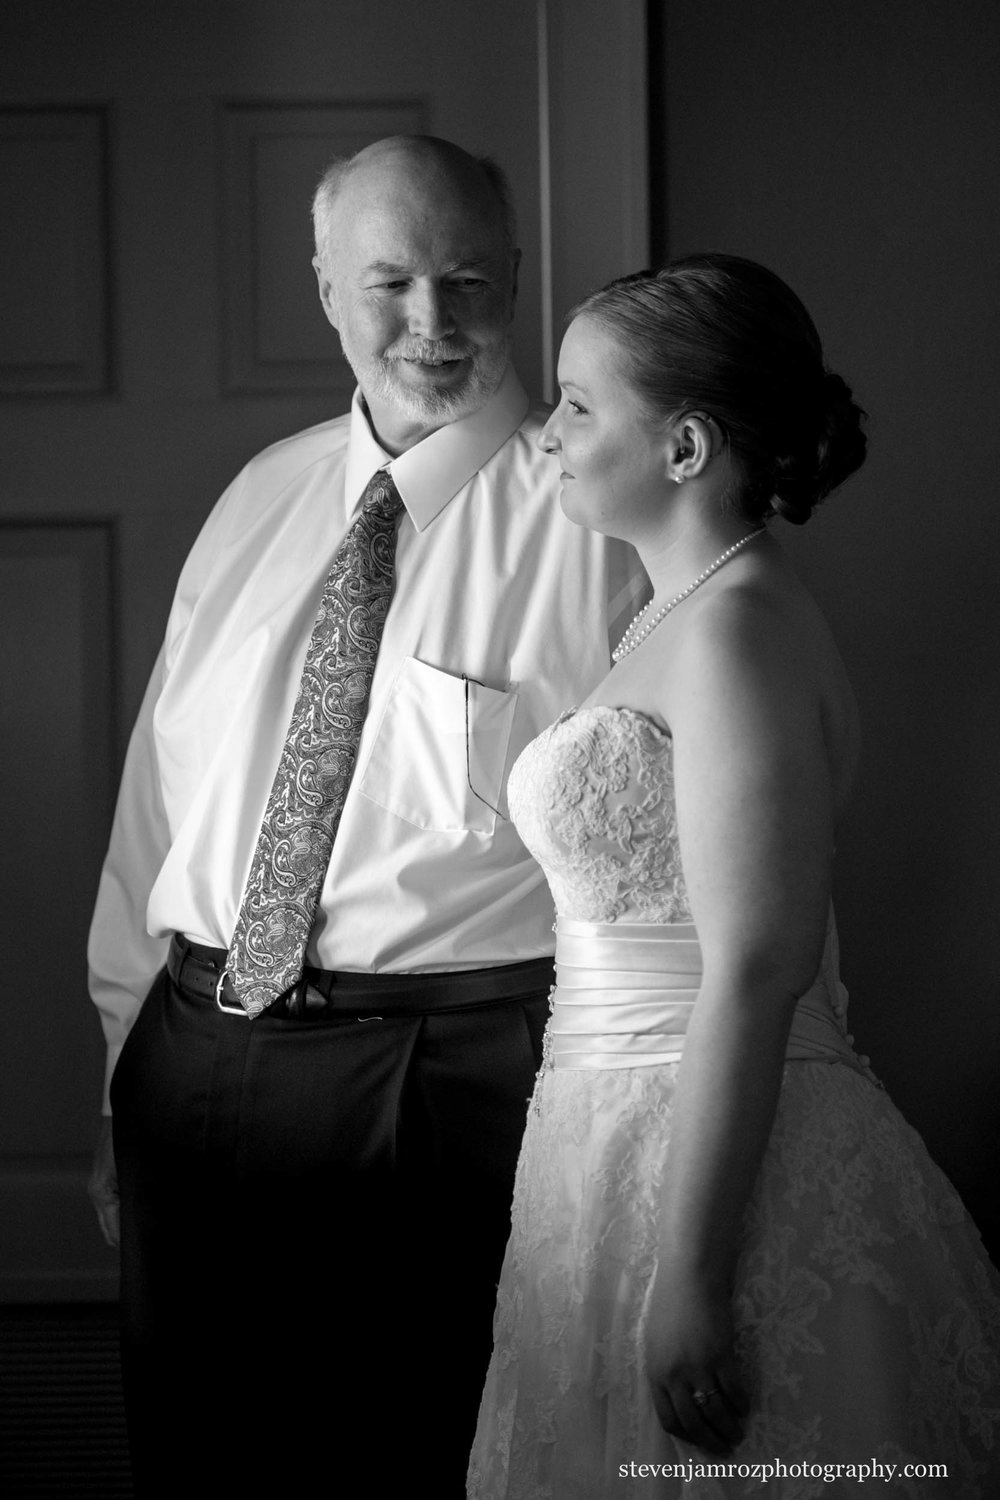 dad-bride-reflect-before-ceremony-wedding-charlotte-nc-steven-jamroz-0733.jpg